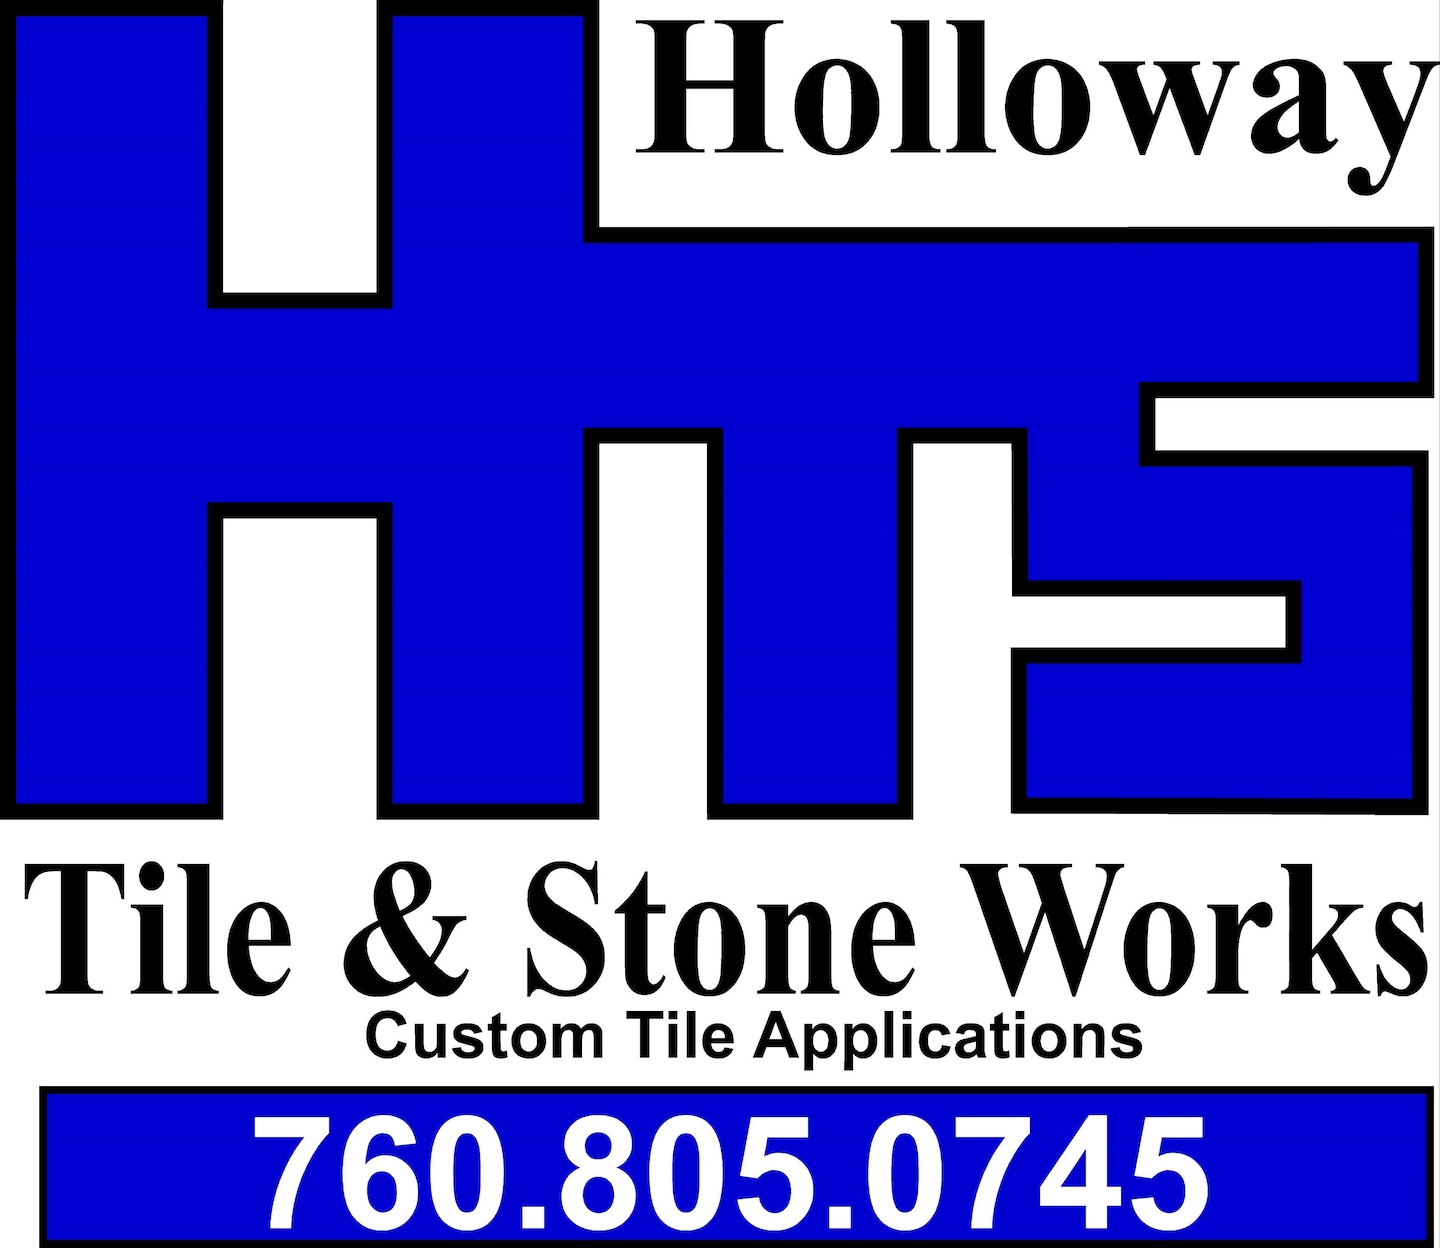 Holloway Tile and Stone Works